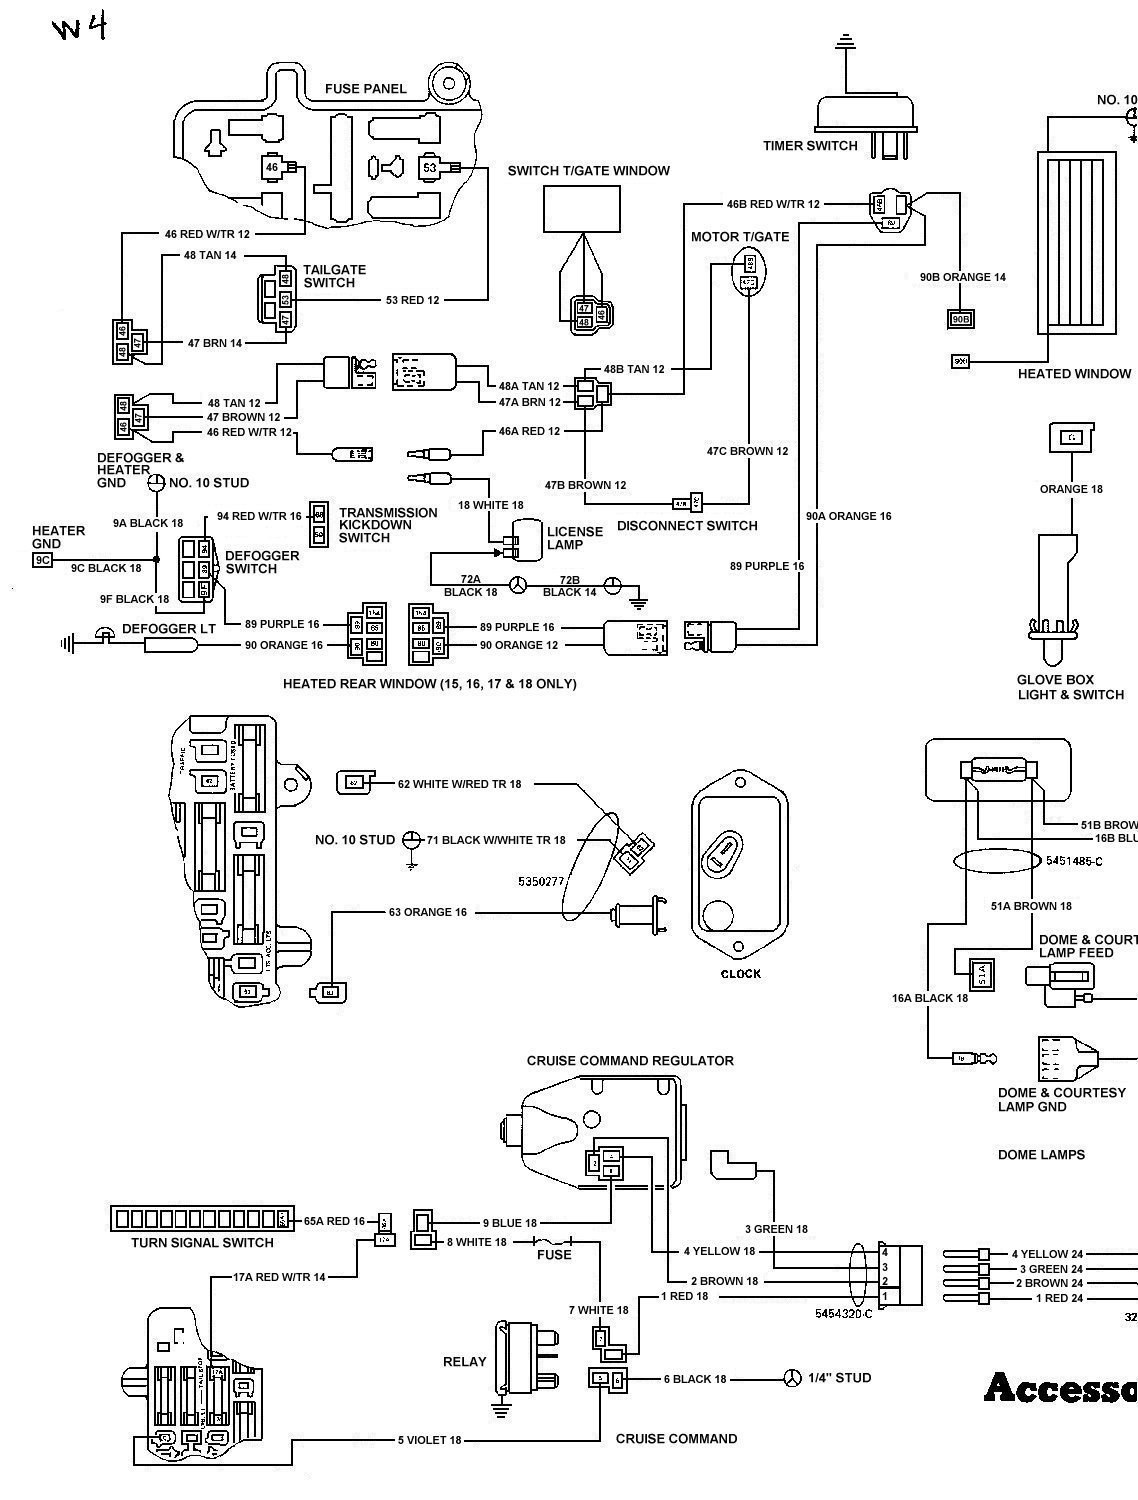 78_FSJ_WiringDiagramPage4 tom 'oljeep' collins fsj wiring page 1984 jeep cj7 wiring diagram at bakdesigns.co